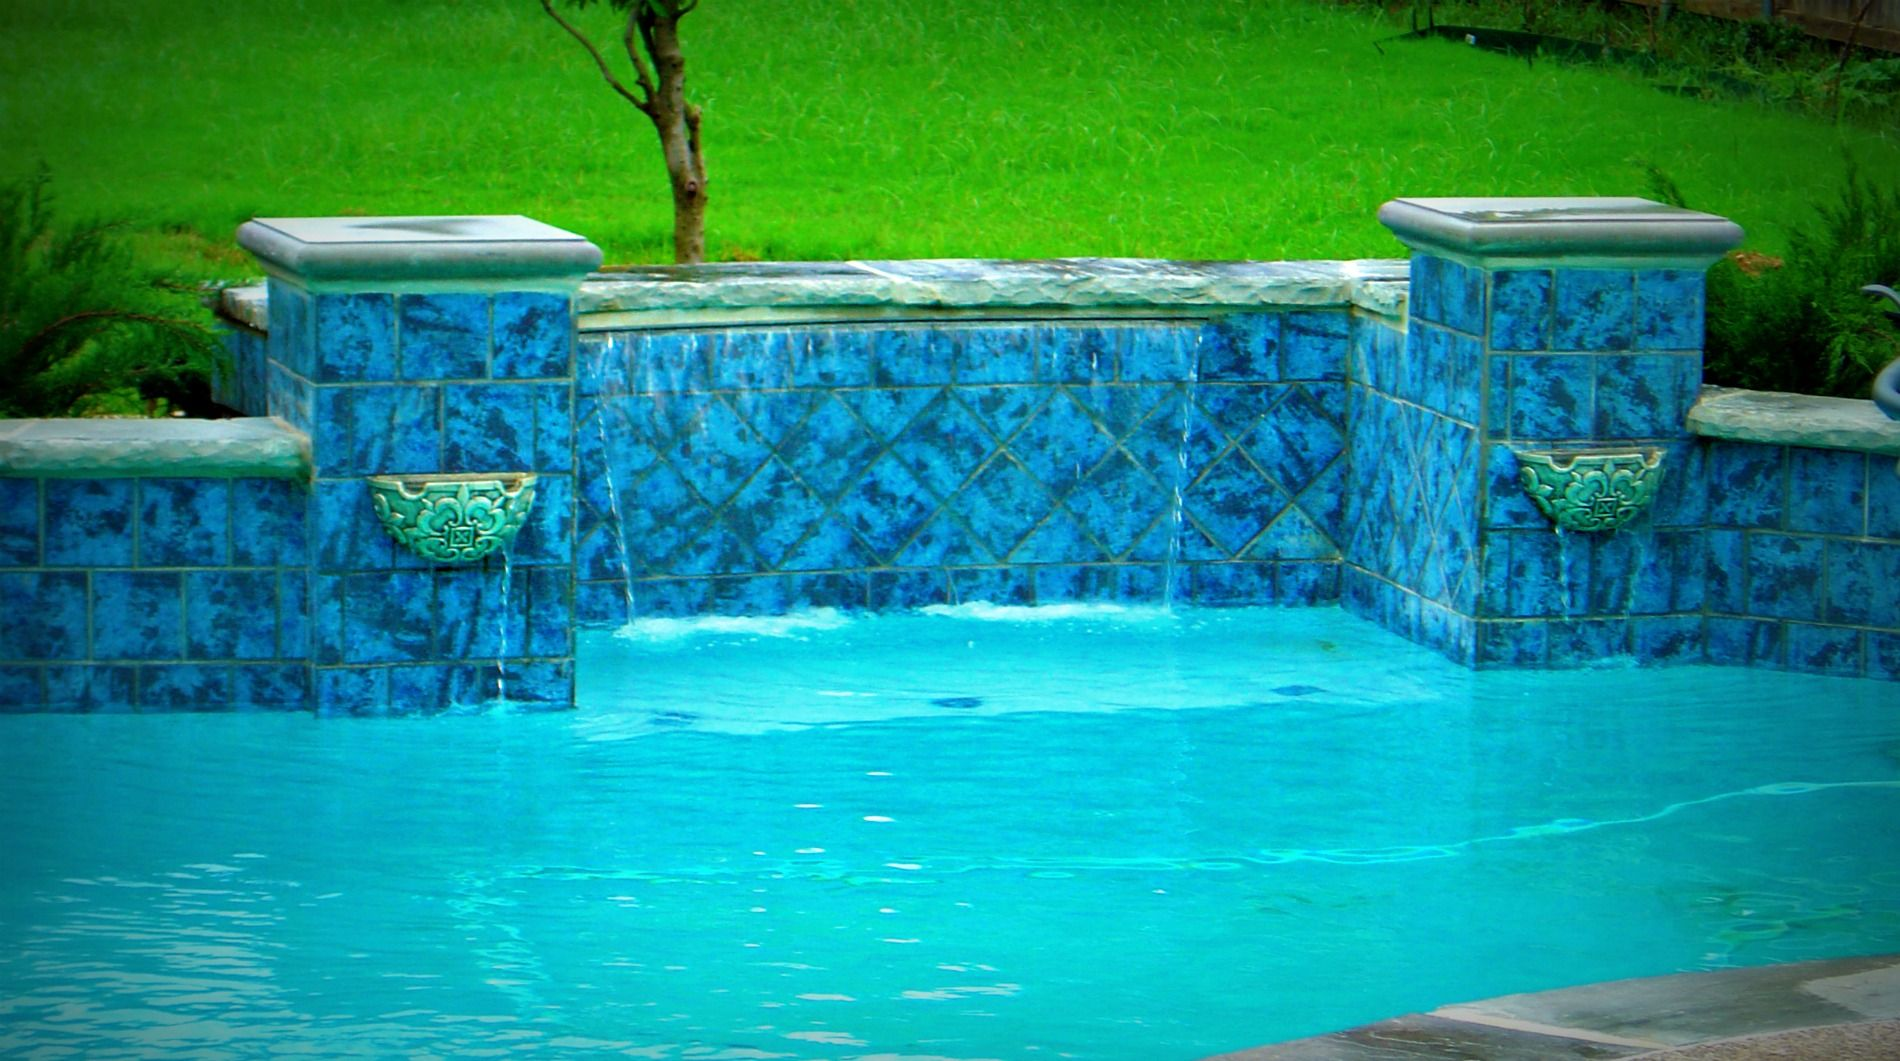 Water Feature Samples By Award Winning Dallas Fort Worth Swimming Pool Builder Puryear Custom